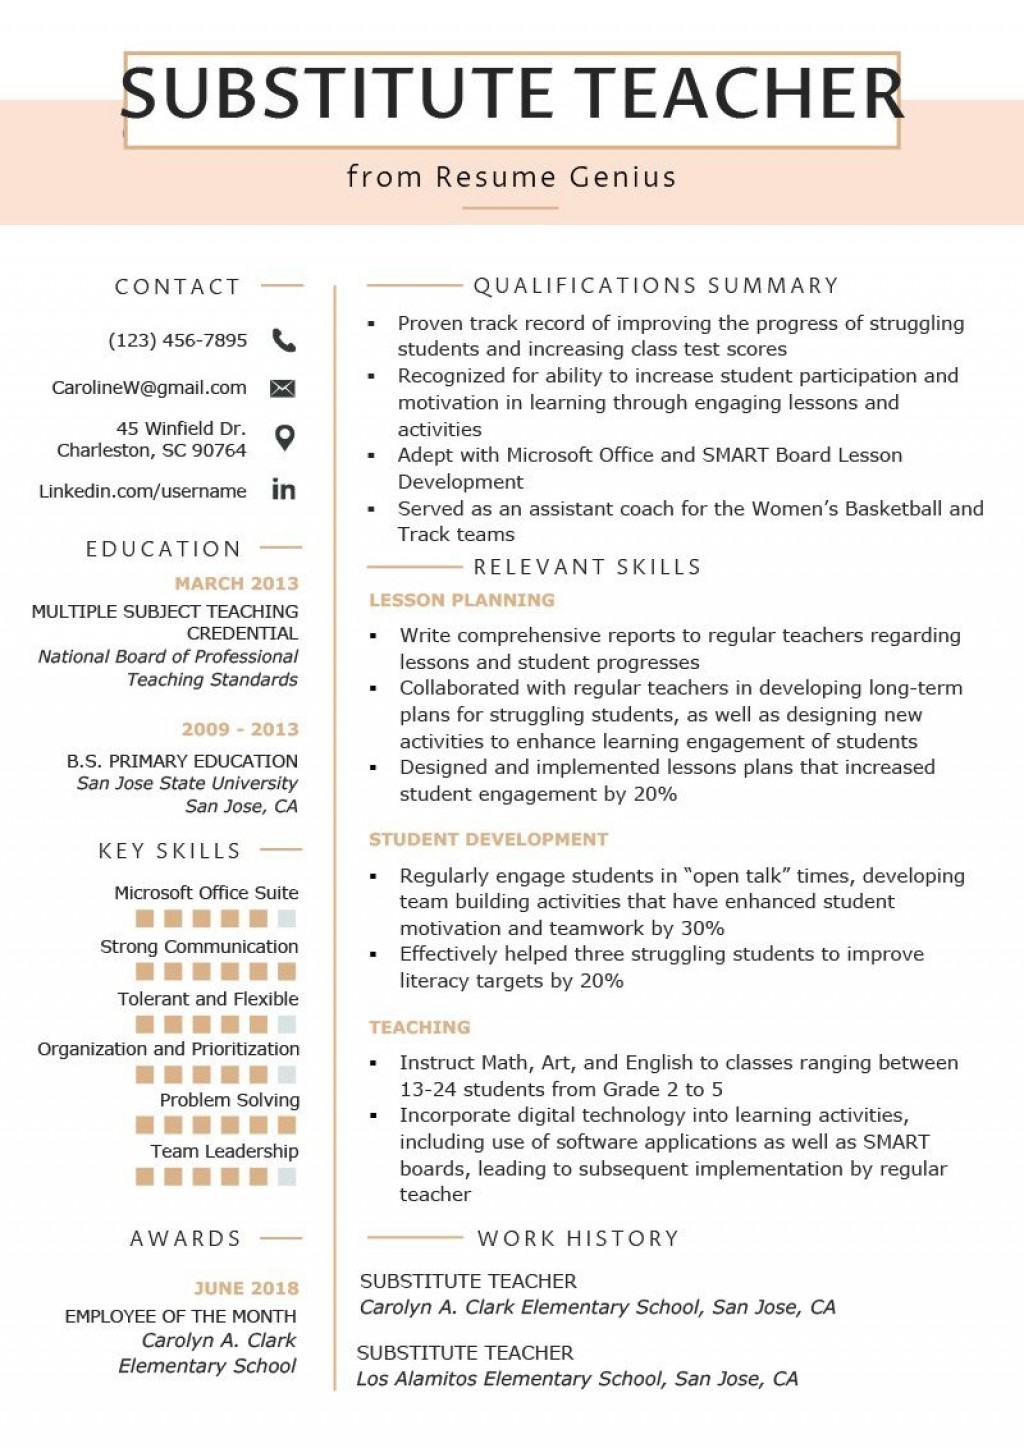 002 Stunning Resume Template For Teaching High Def  Cv Job Application Assistant In PakistanLarge